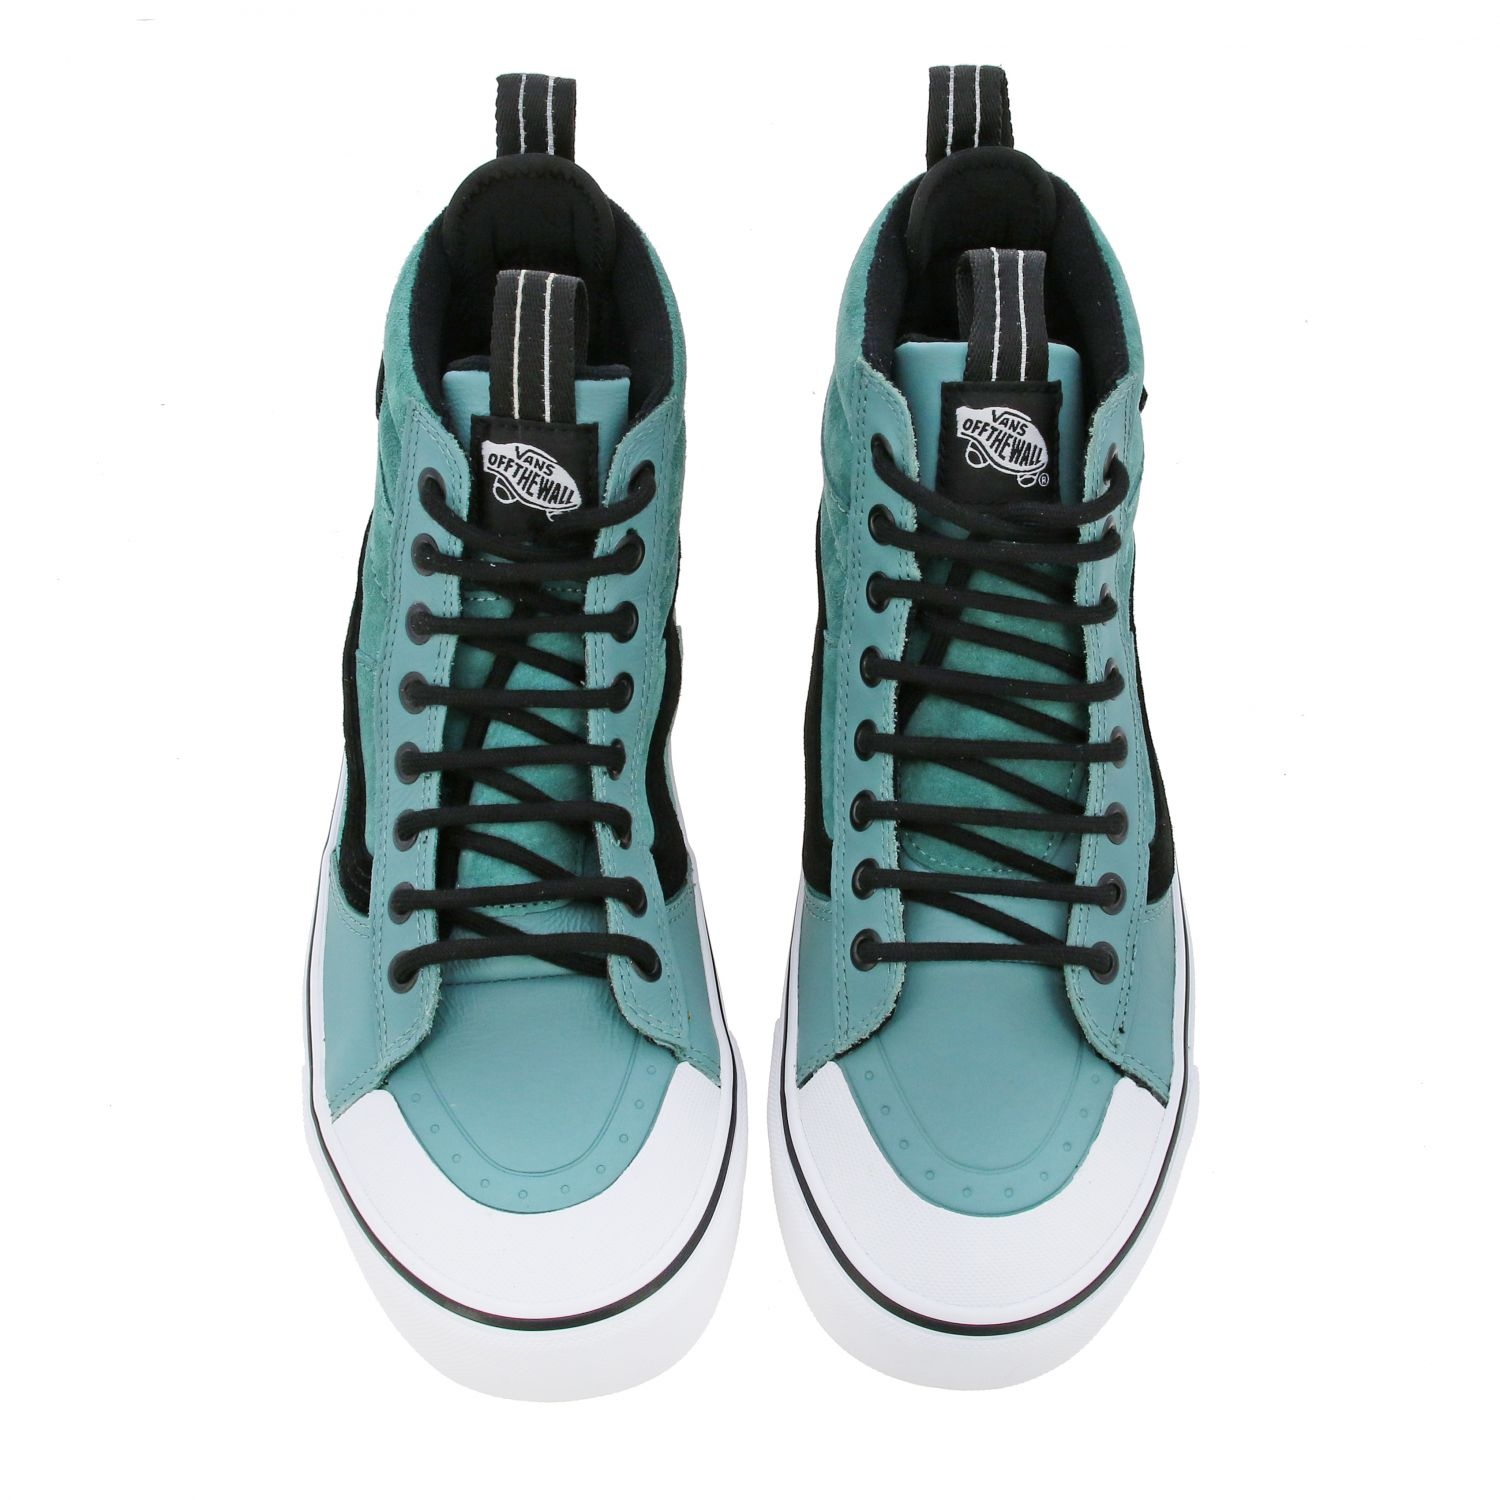 vans mte 360 sk8 hi sneakers in leather and suede sneakers vans men water sneakers vans vn0a4p3ituj1 giglio en vans mte 360 sk8 hi sneakers in leather and suede